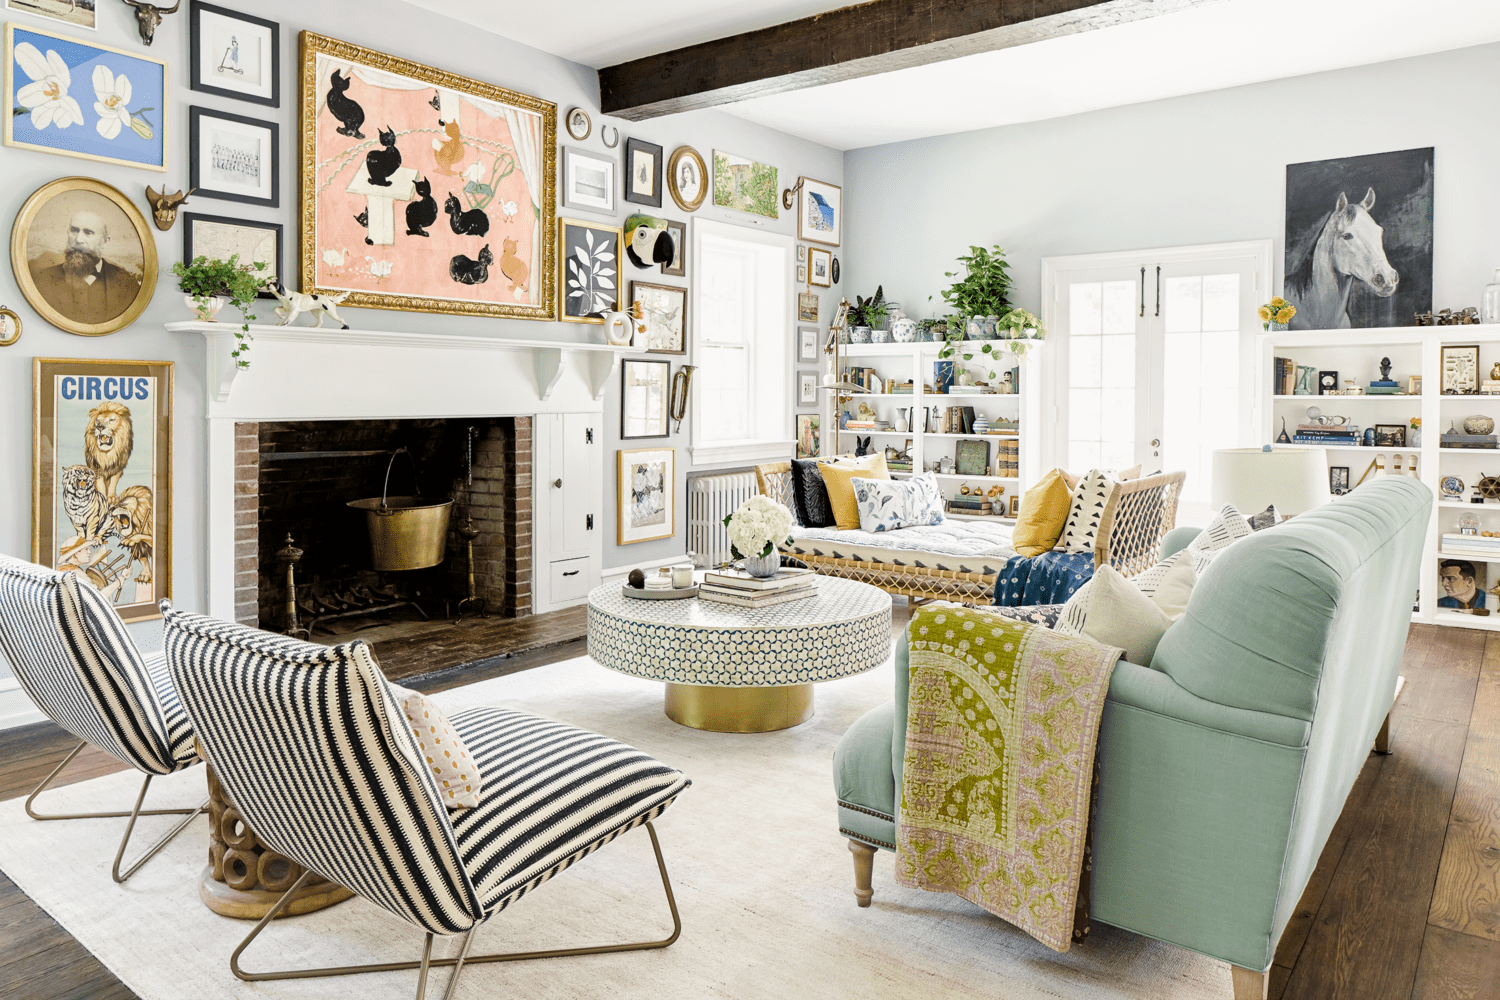 15 Decorating Ideas For Gray Walls, Gray Wall Living Room Design